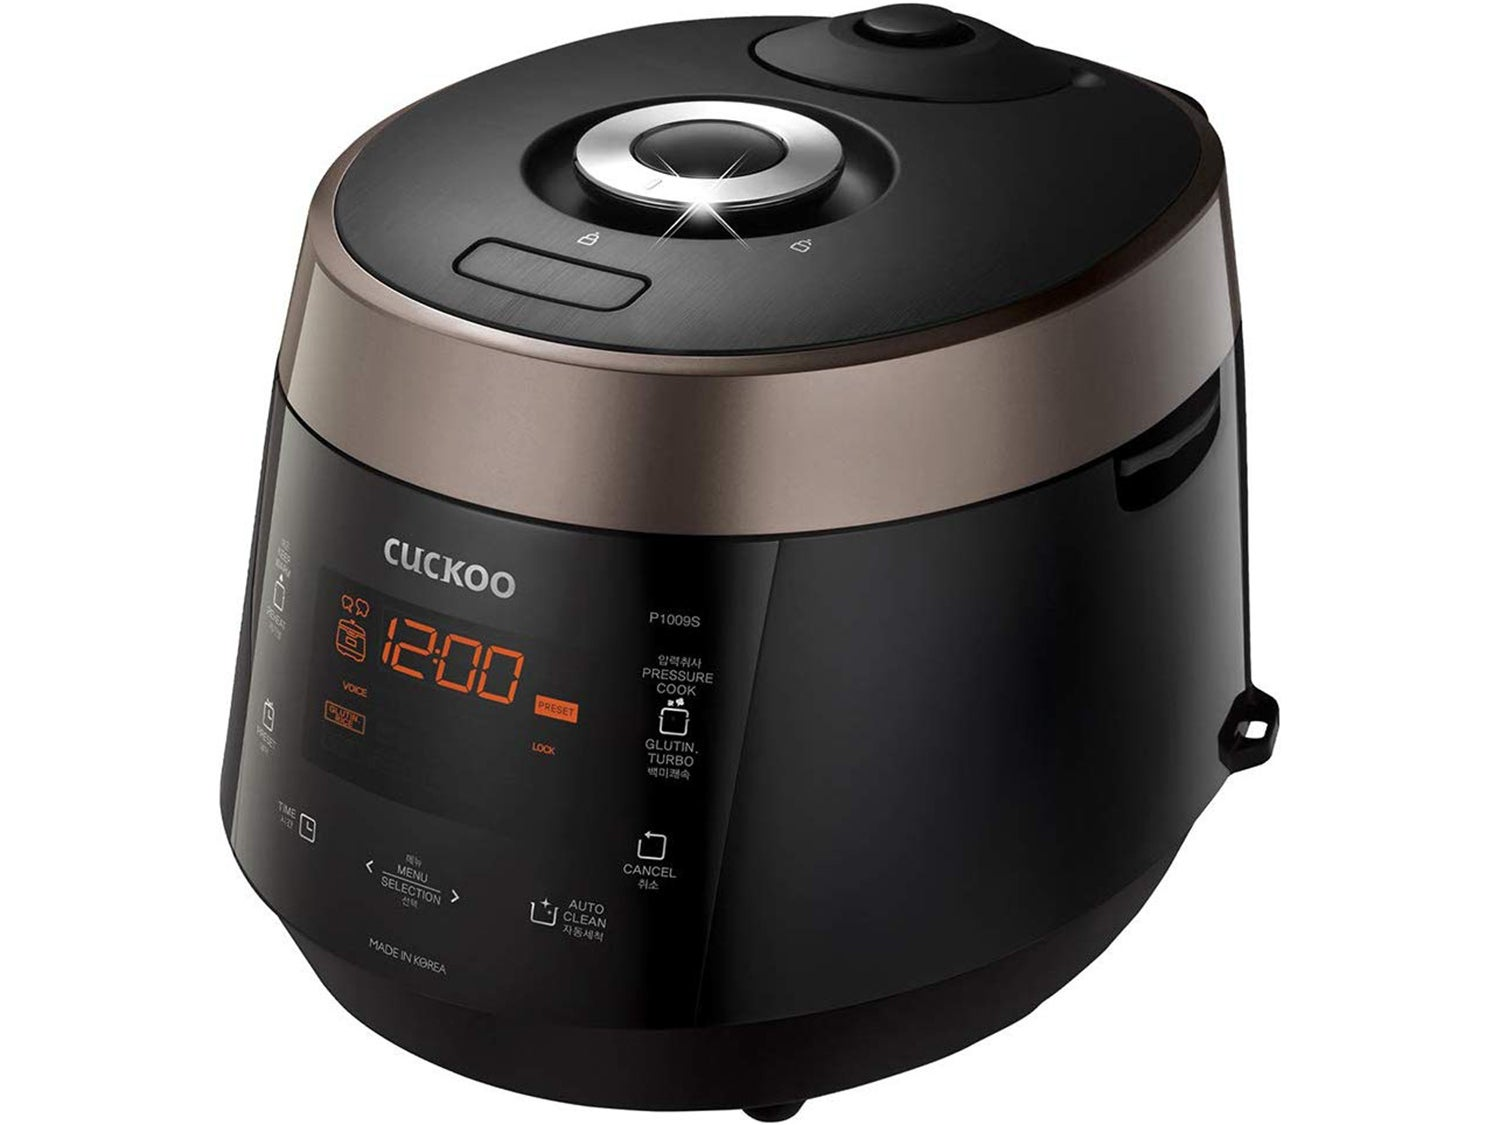 Cuckoo 10 Cup Electric Heating Pressure Cooker & Warmer – 12 Built-in Programs, Glutinous (White), Mixed, Brown, GABA Rice, and more, 15.70 x 11.50 x 11.70, Black